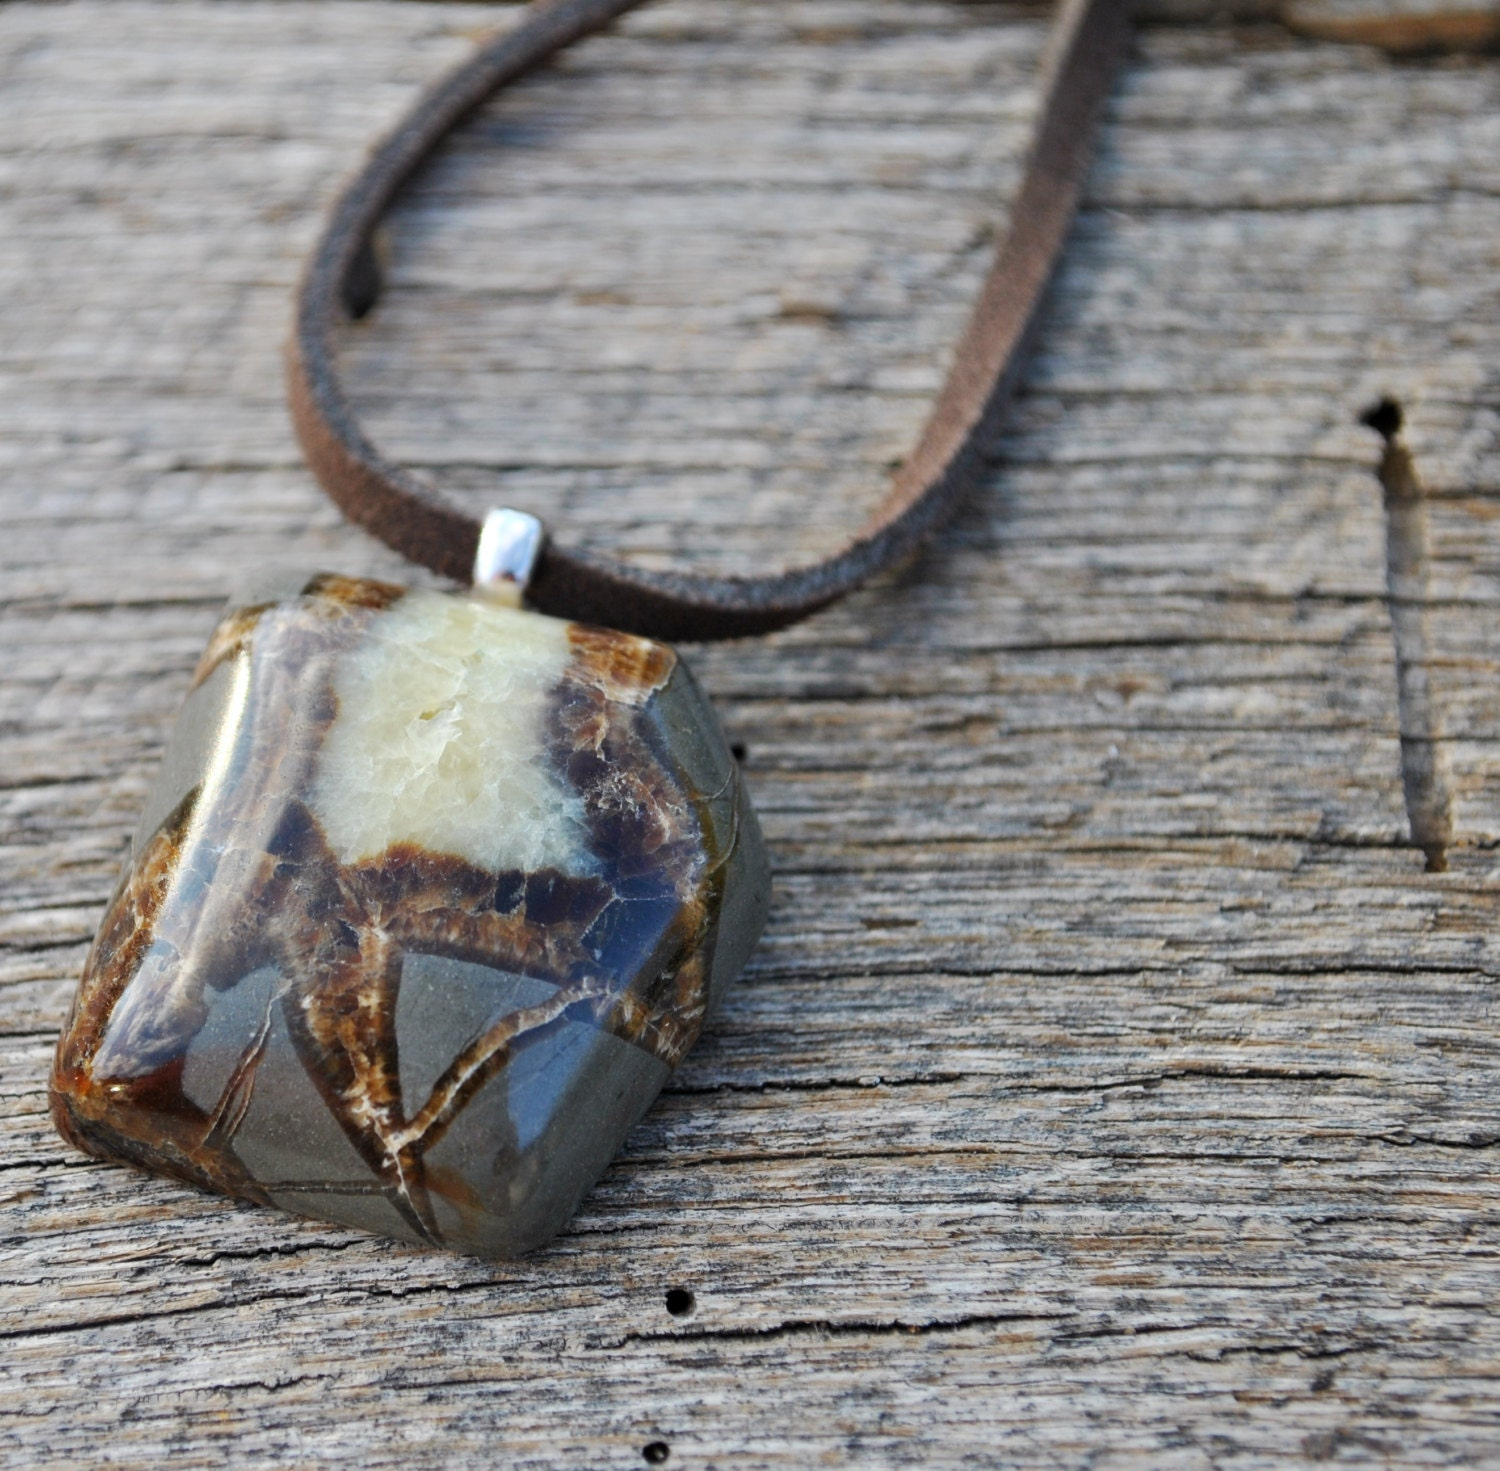 Men's Utah Septarian Nodule Pendant on a brown leather cord necklace chain simple, minimalist - Beechtree